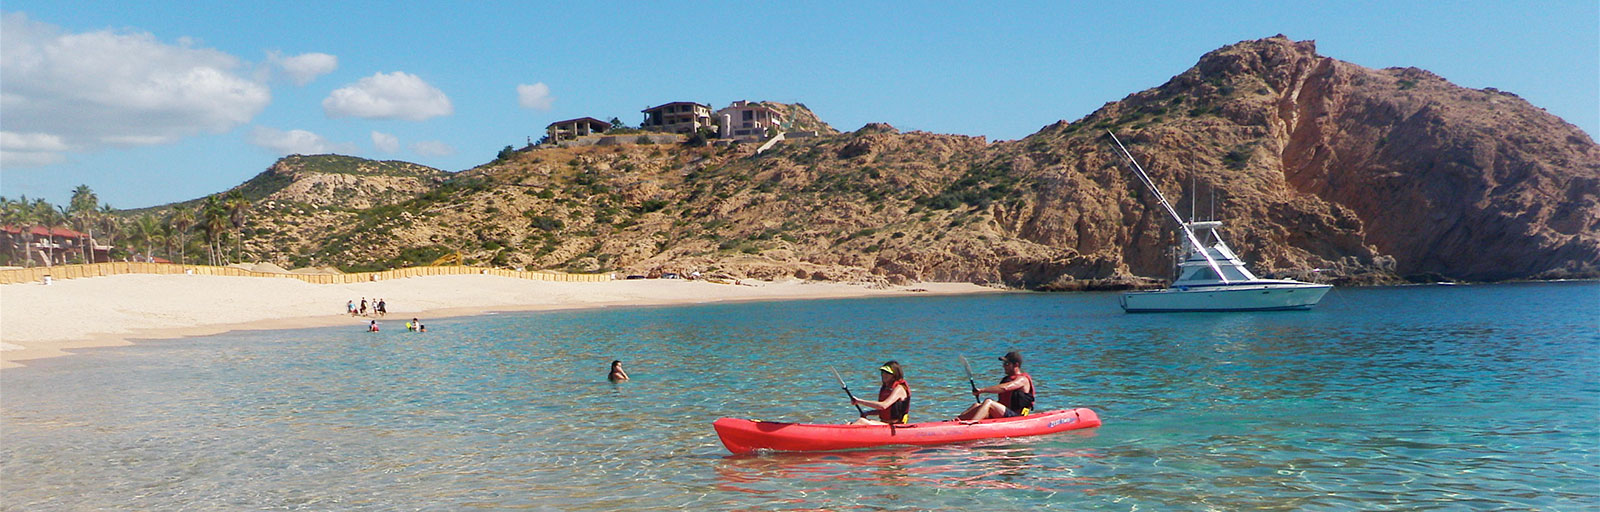 Sea Kayaking & Snorkeling on a Mexico Yoga Retreat: Tranquil Bay